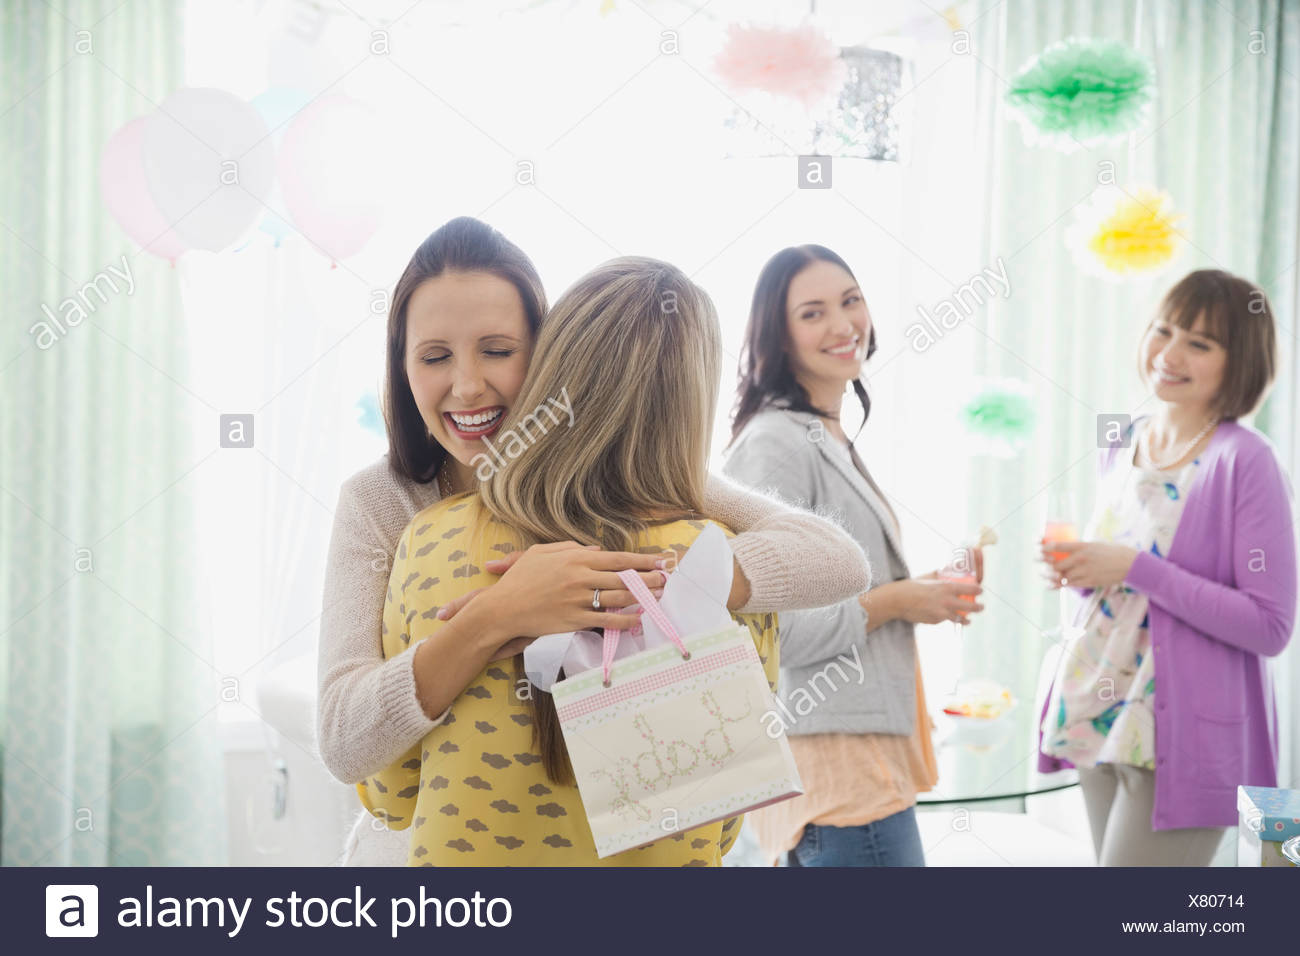 Women embracing at baby shower Stock Photo